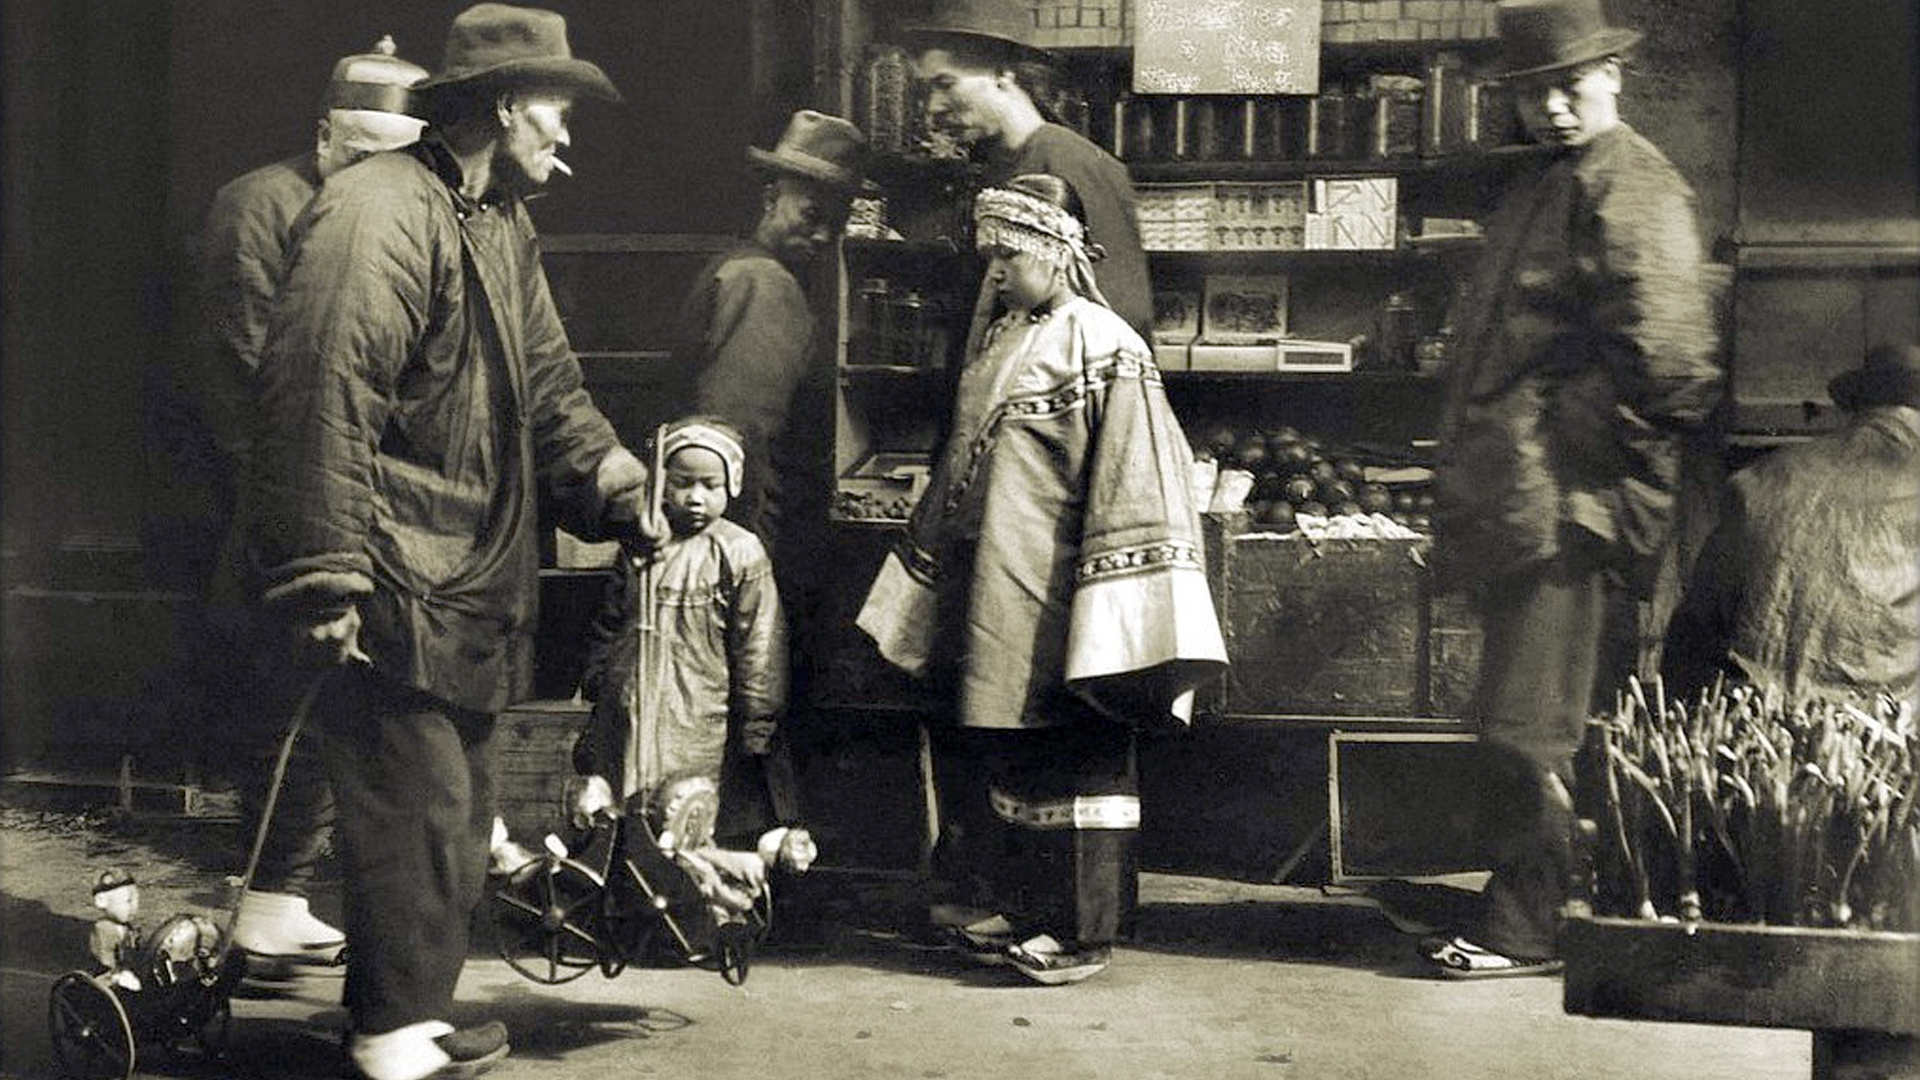 Toy vendor in Chinatown. Arnold Genthe. PhotosForClass